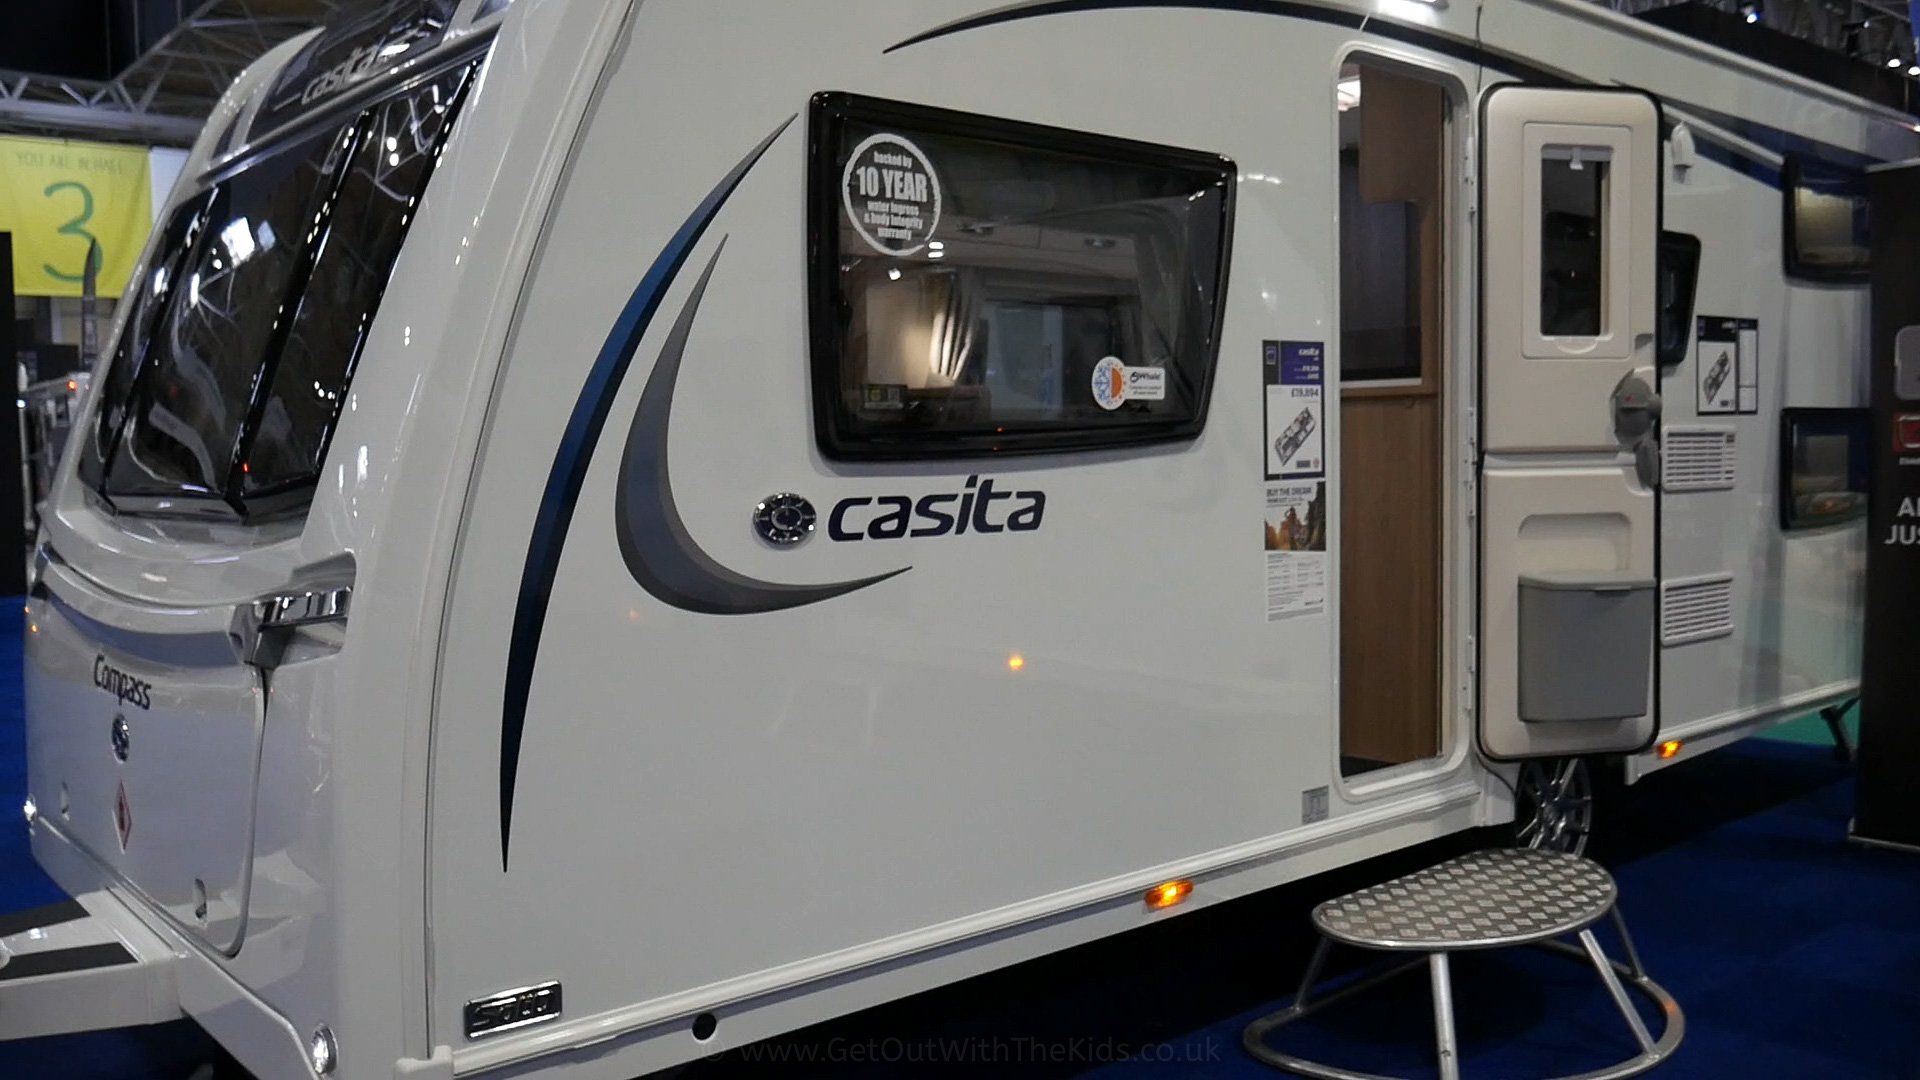 The Compass Casita 586 Caravan